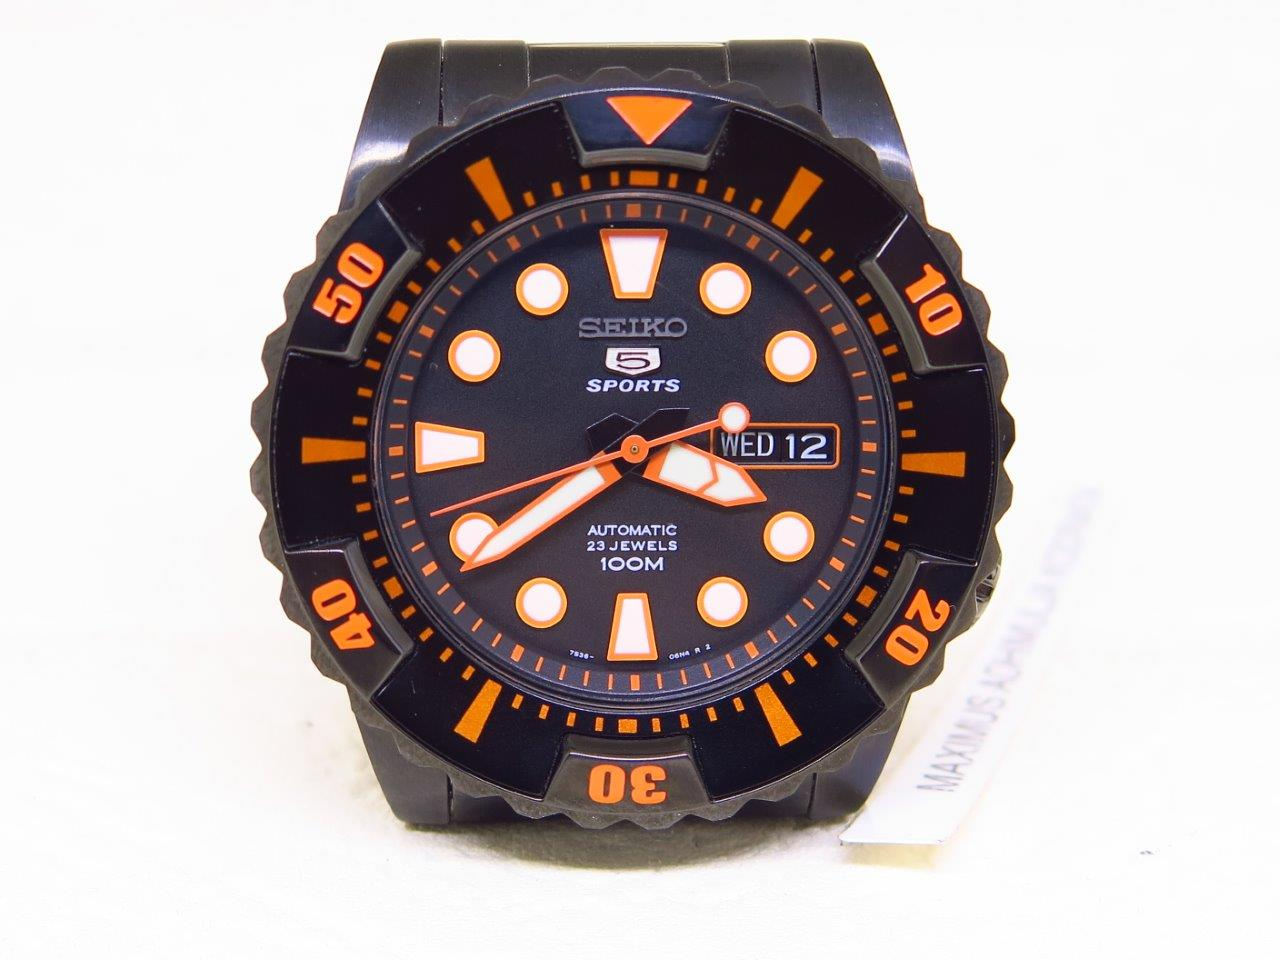 SEIKO 5 SPORTS BLACK CASE ORANGE INDEXES - SEIKO SNZJ21K1 - AUTOMATIC 7S36